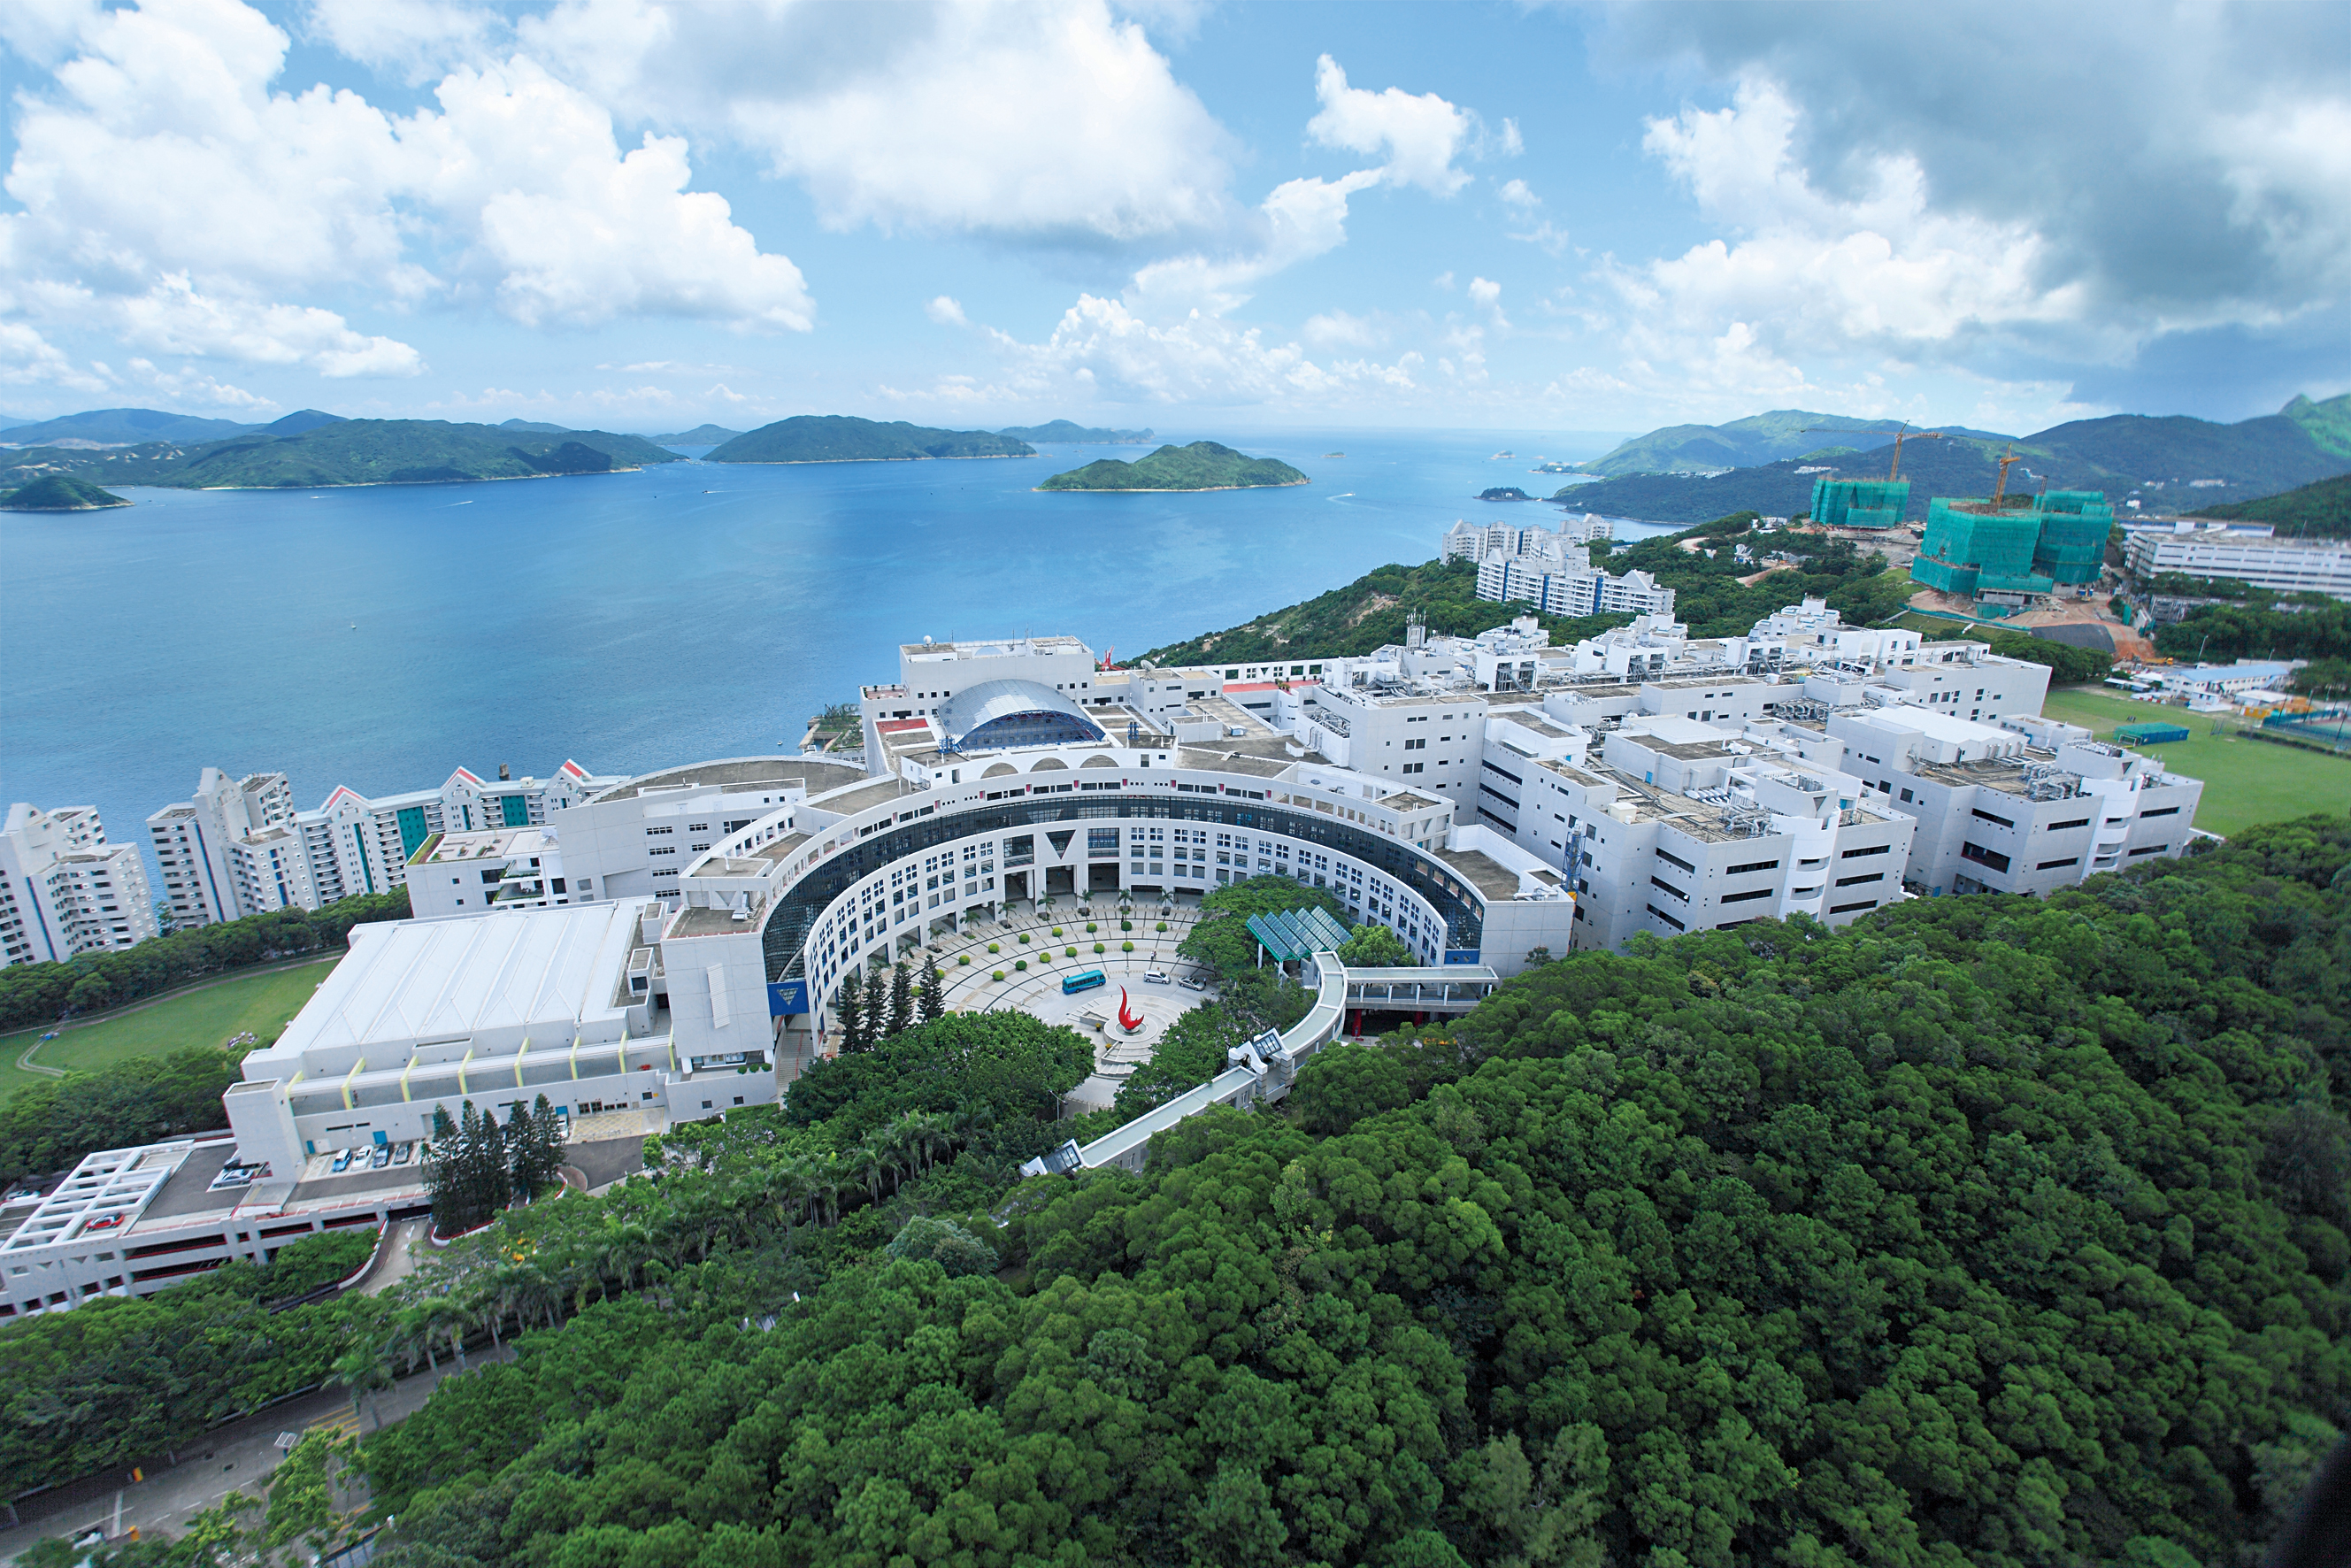 HKUST_campus_view_looking_from_above.jpg